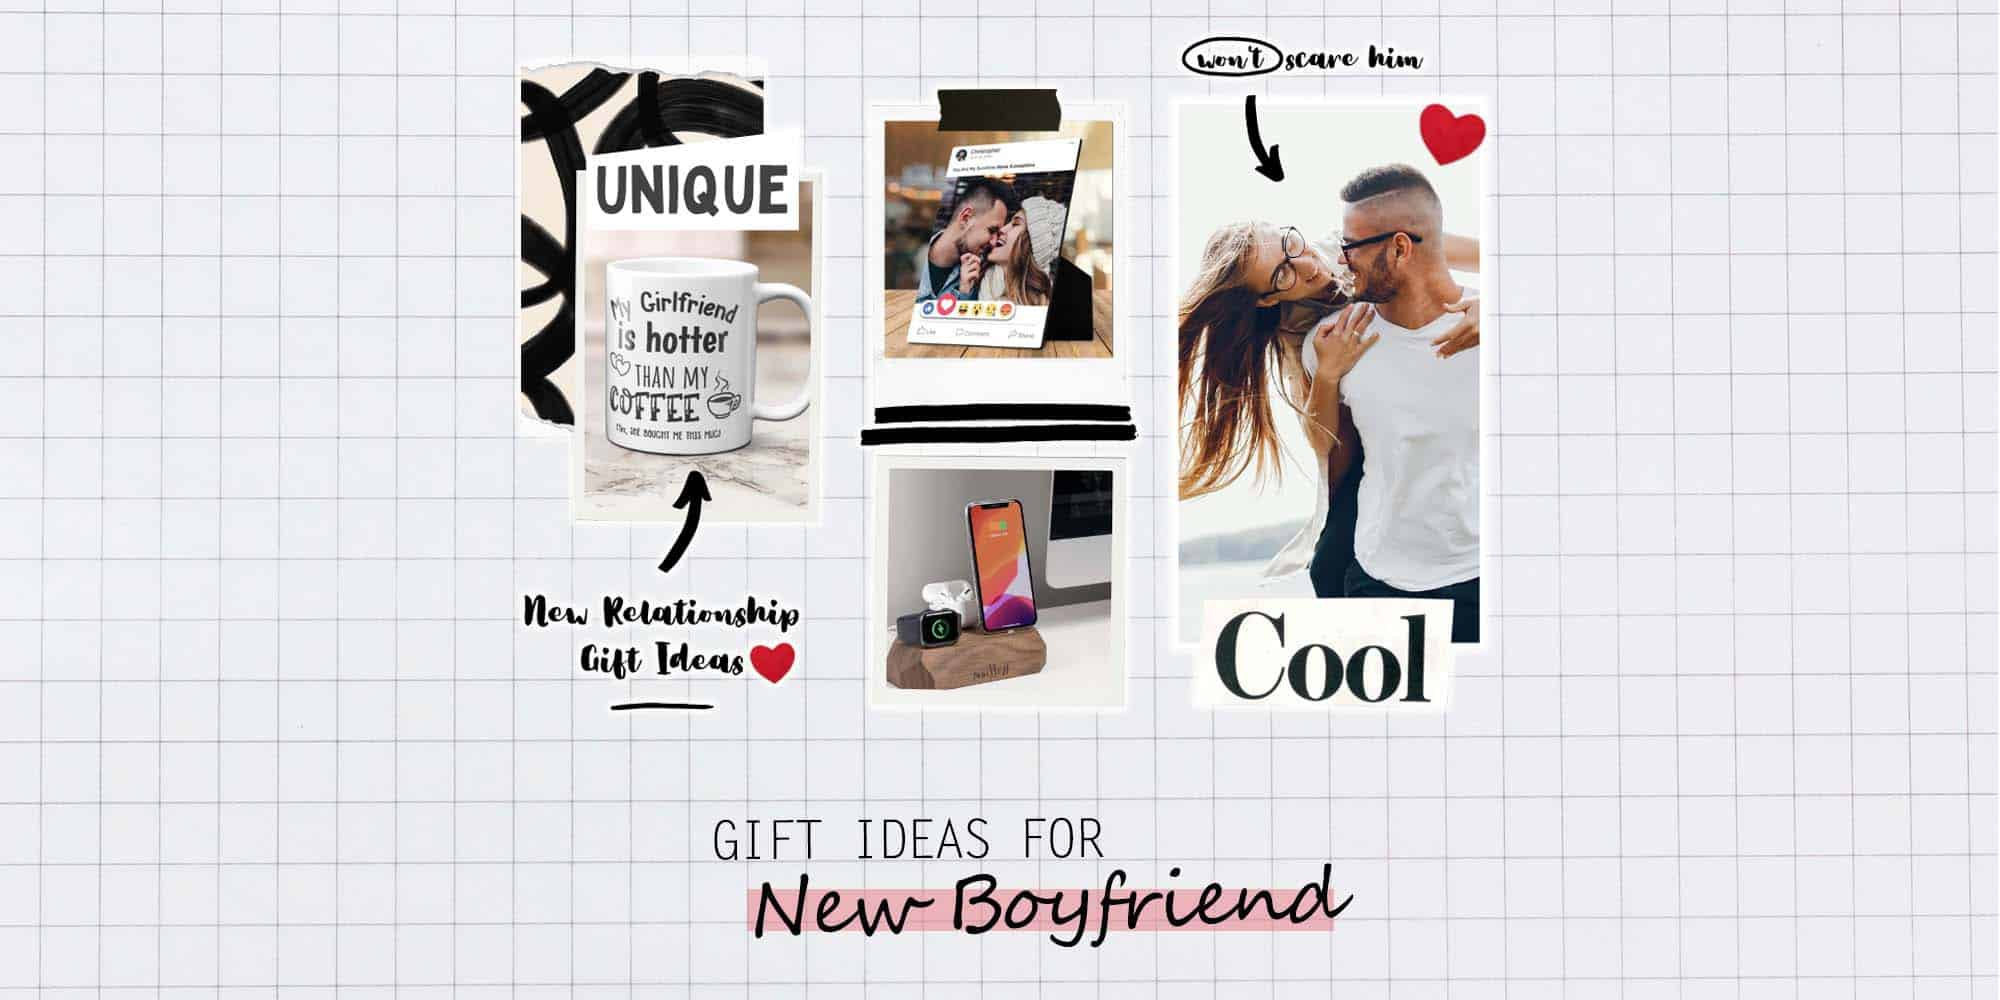 53 Best Gifts For New Boyfriend To Not Scare Him (2021)